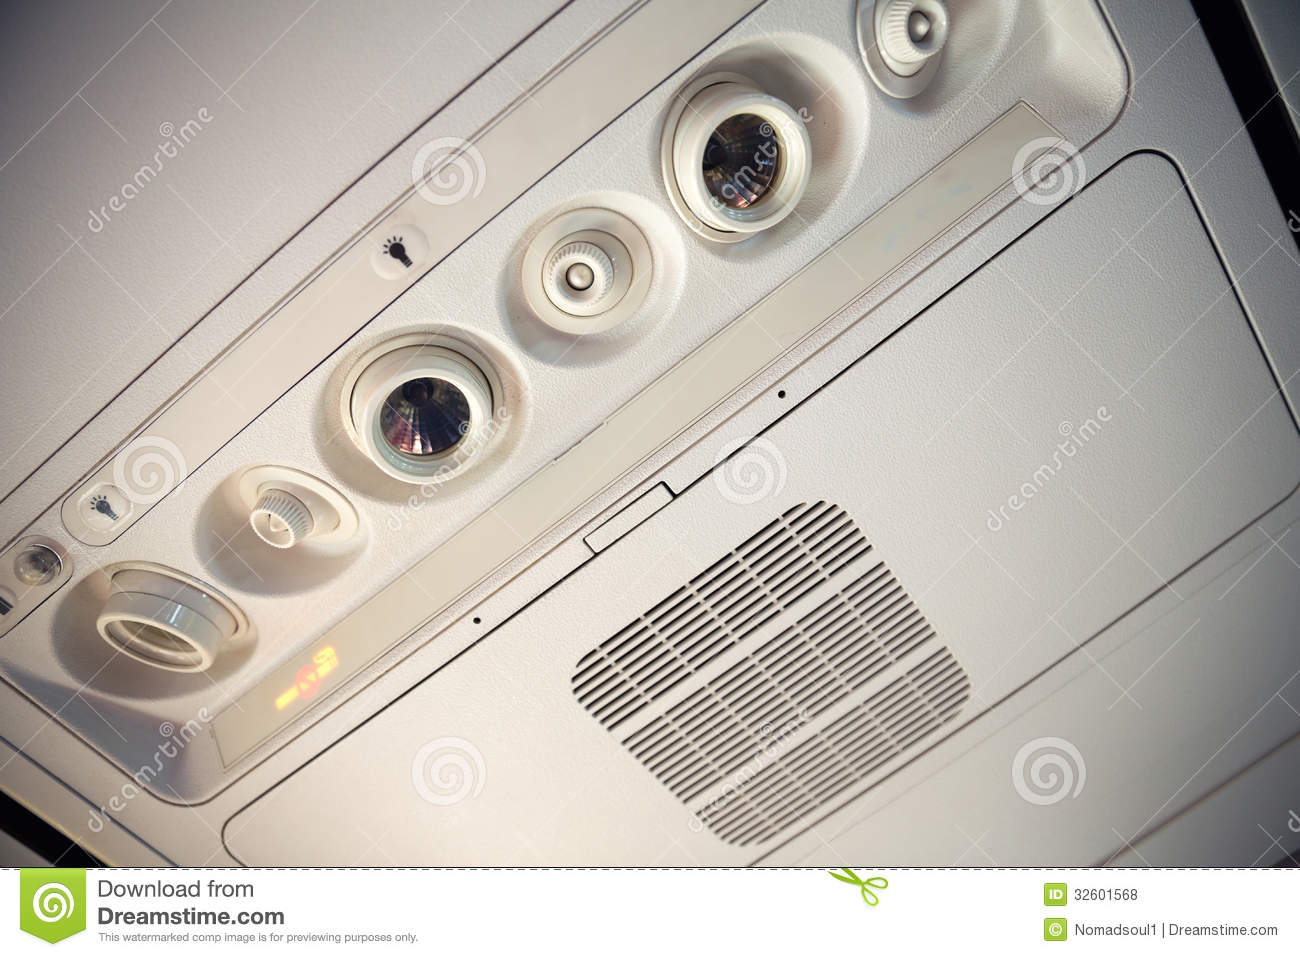 Aeroplane Overhead Console Stock Photo Image Of